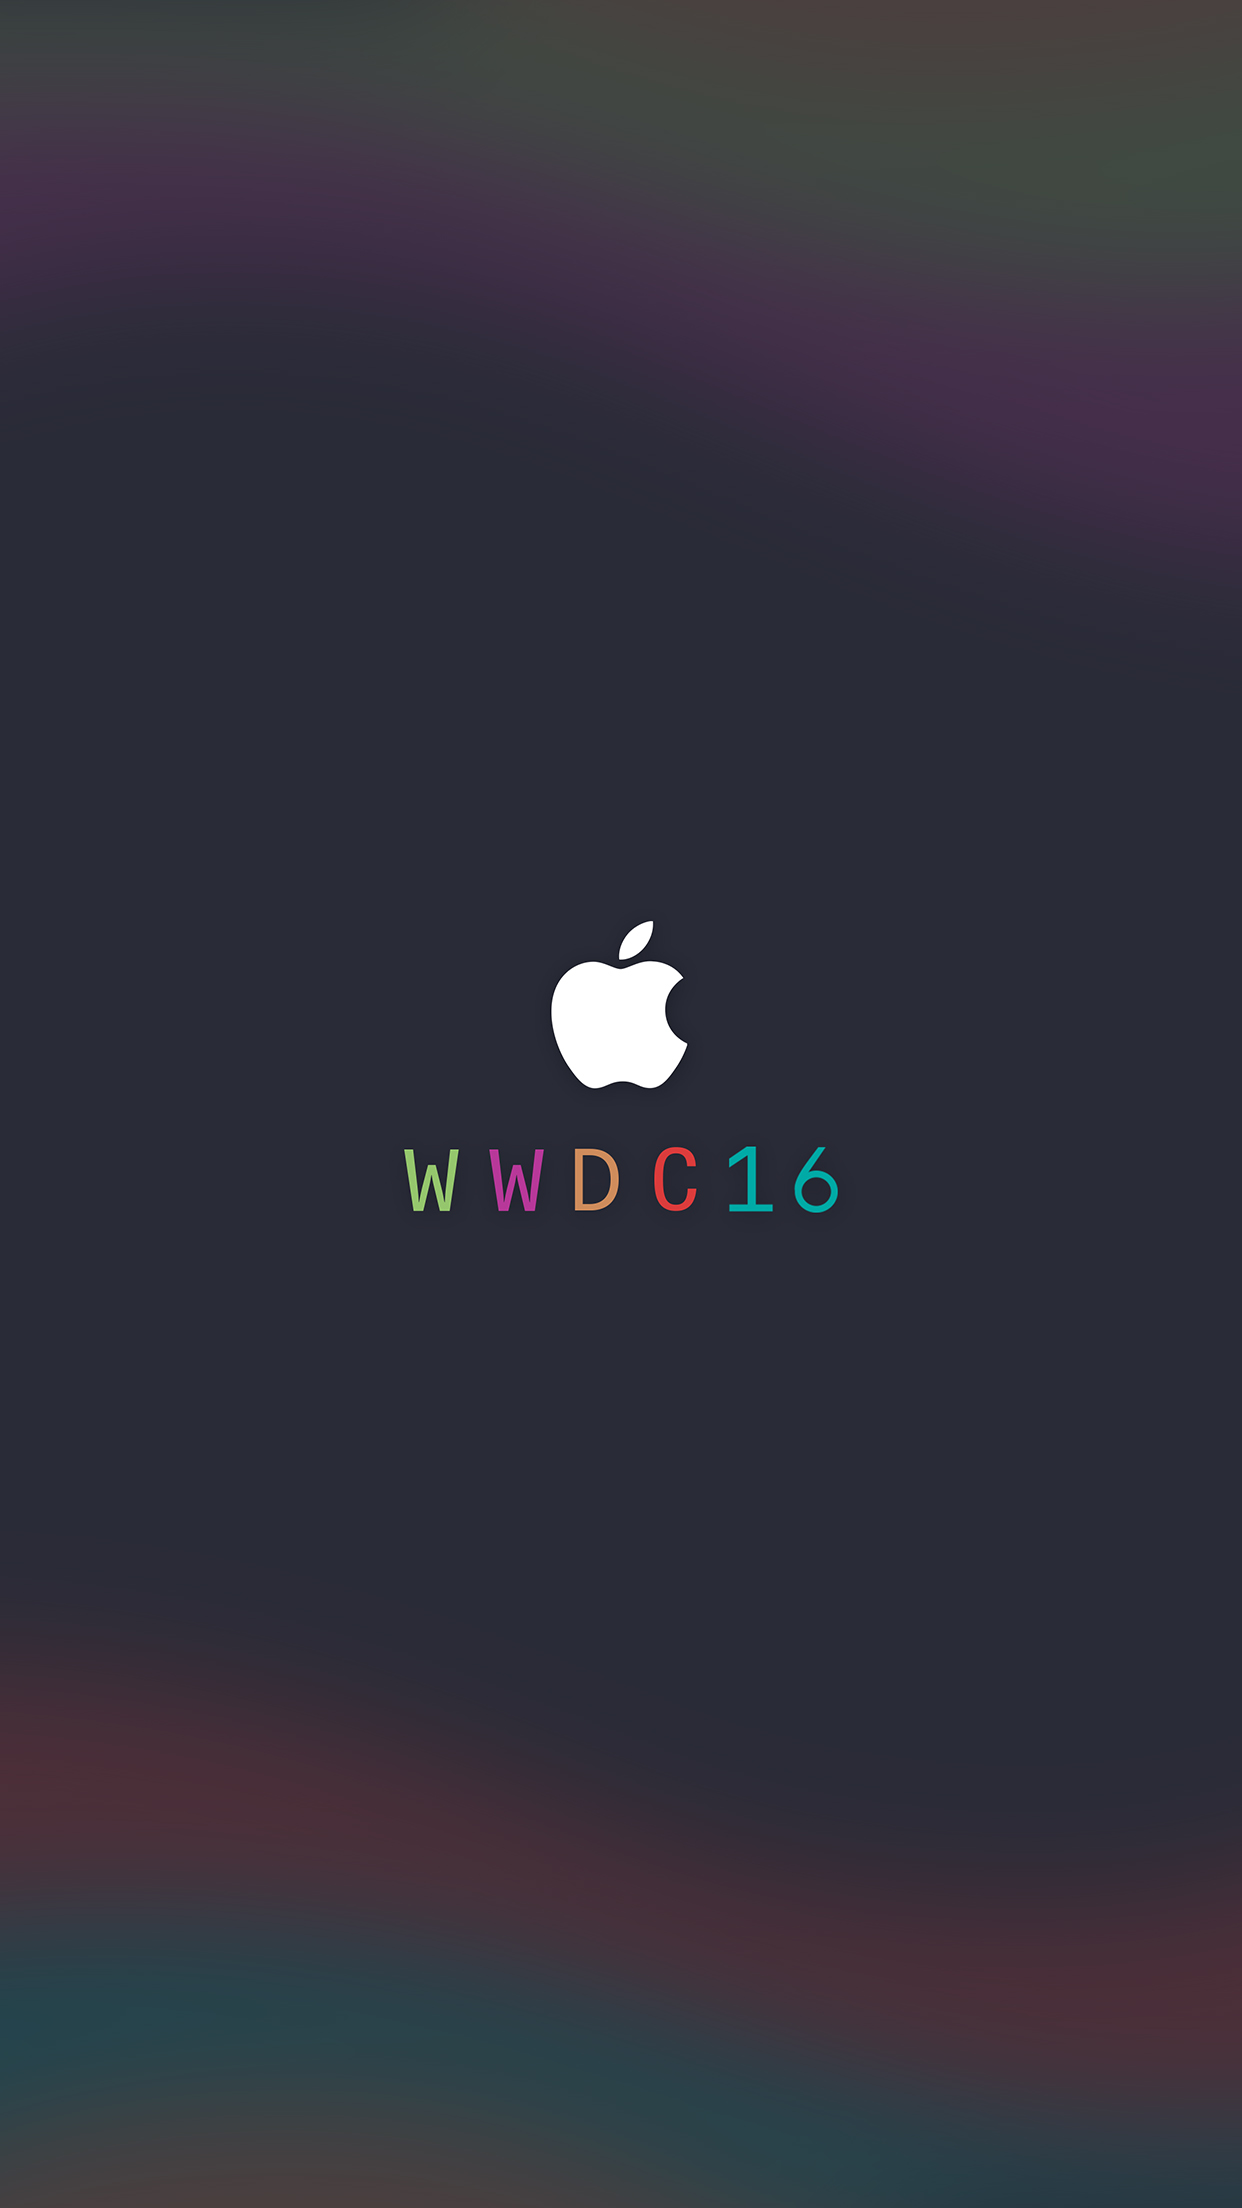 Keynote 2016 Keynote Logo 3 3Wallpapers iPhone Parallax Apple Keynote logo 3